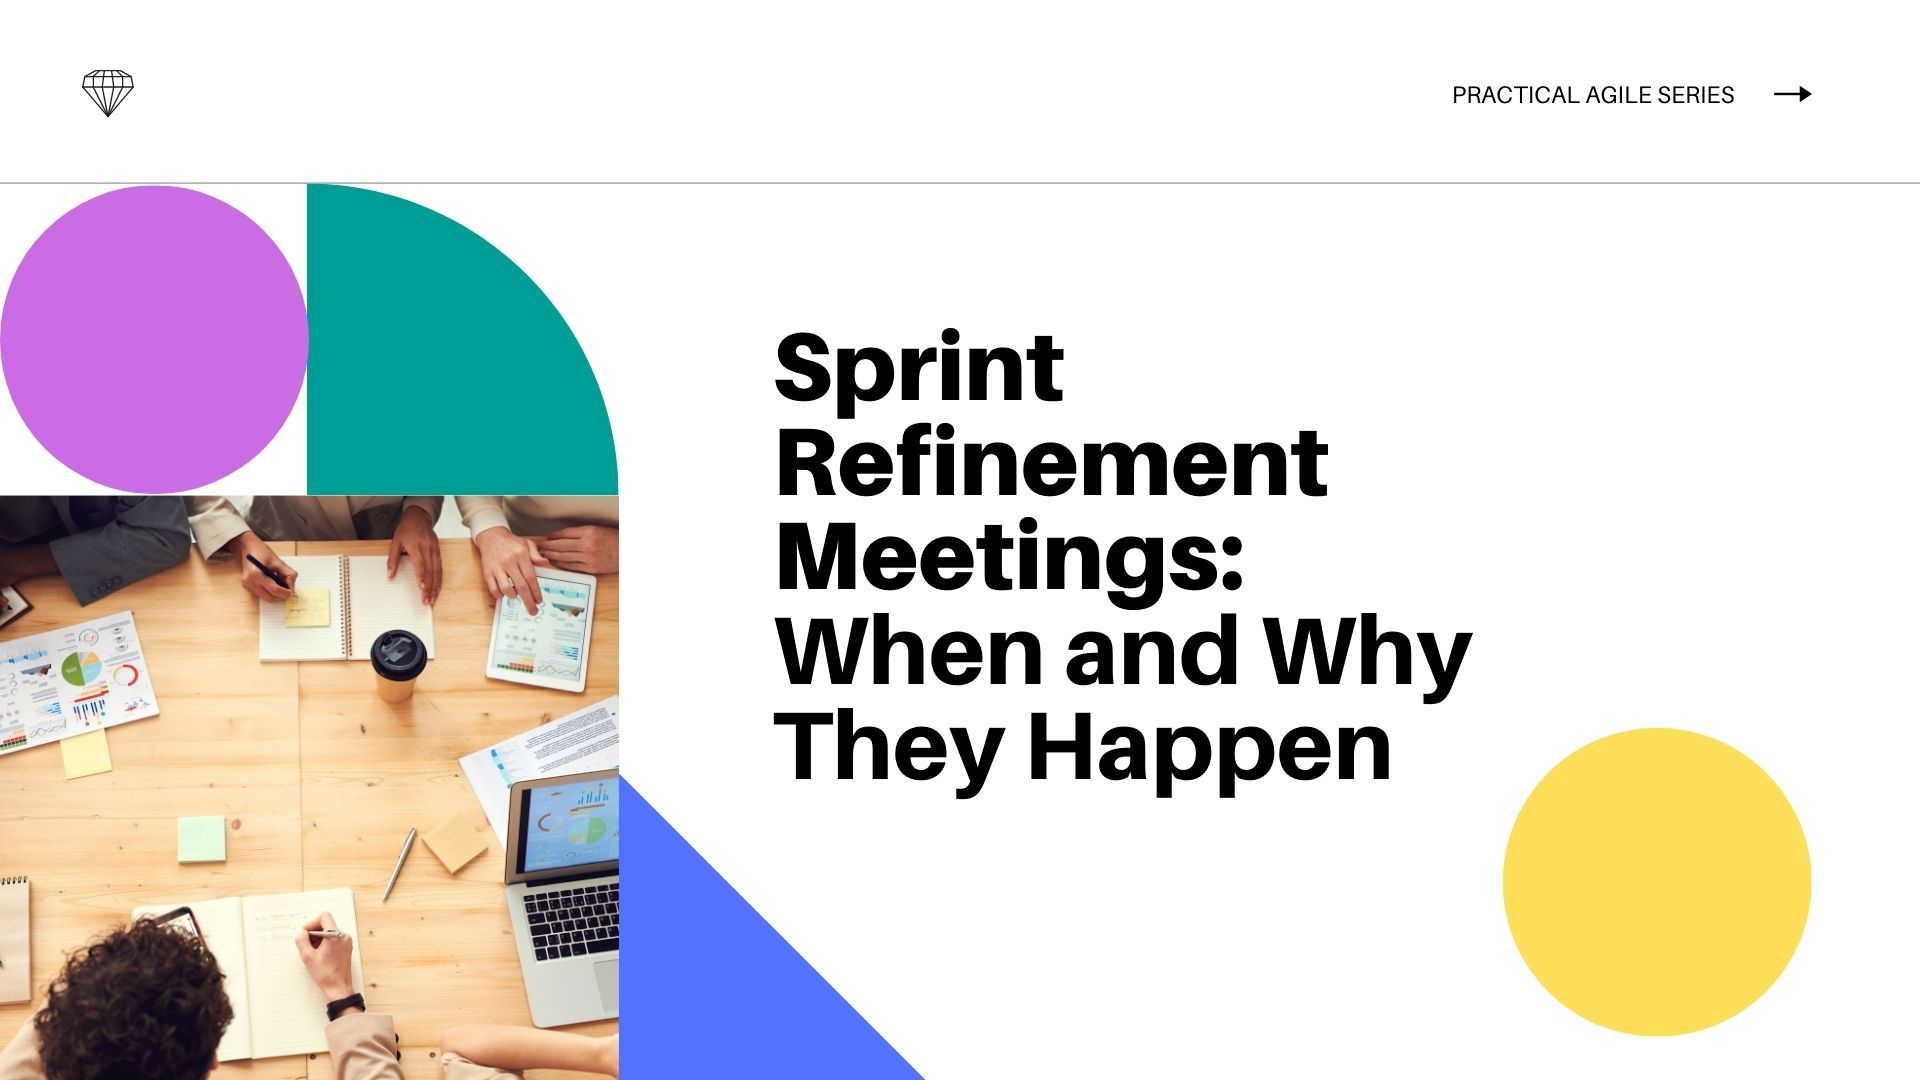 Sprint Refinement Meetings: When and Why They Happen